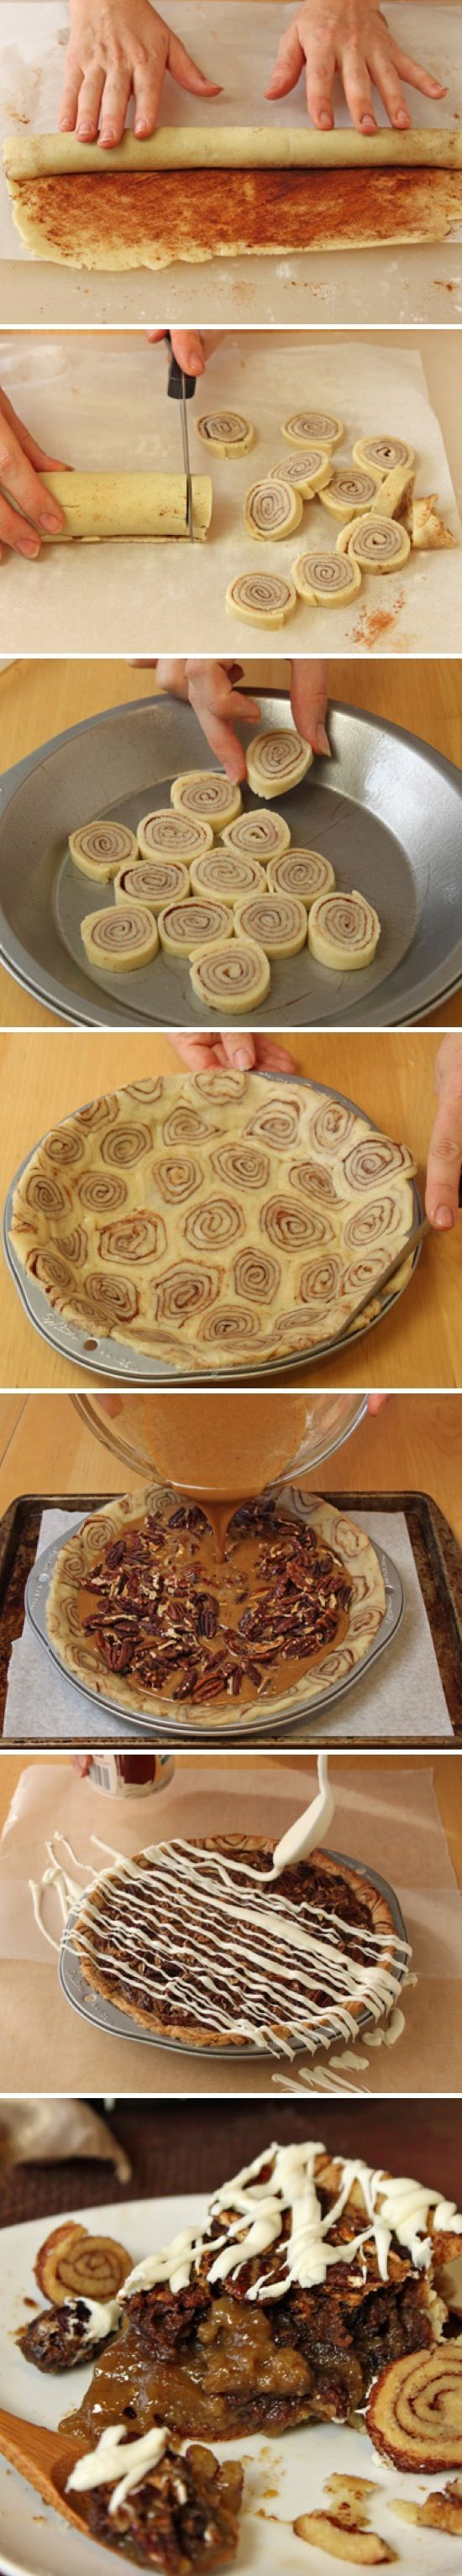 Cinnamon Pie | | Delicious Desserts | | Pinterest